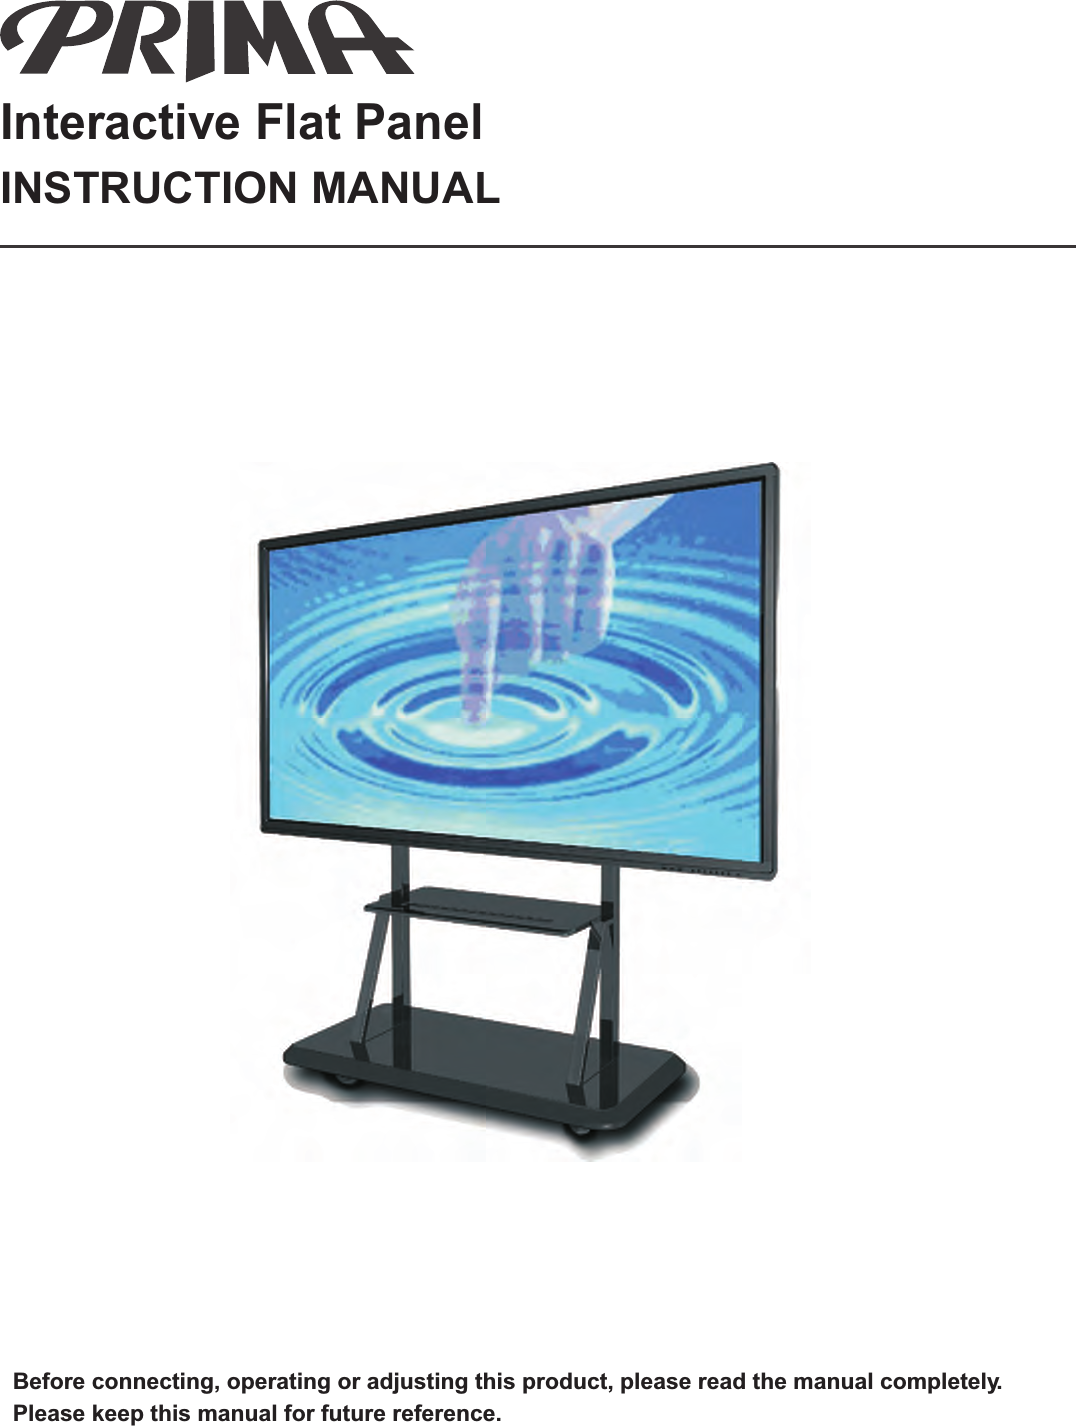 xiamen prima technology le 55pc88 interactive flat panel user manual rh usermanual wiki Prima Guides Kirby 64 Prima Official Strategy Guides